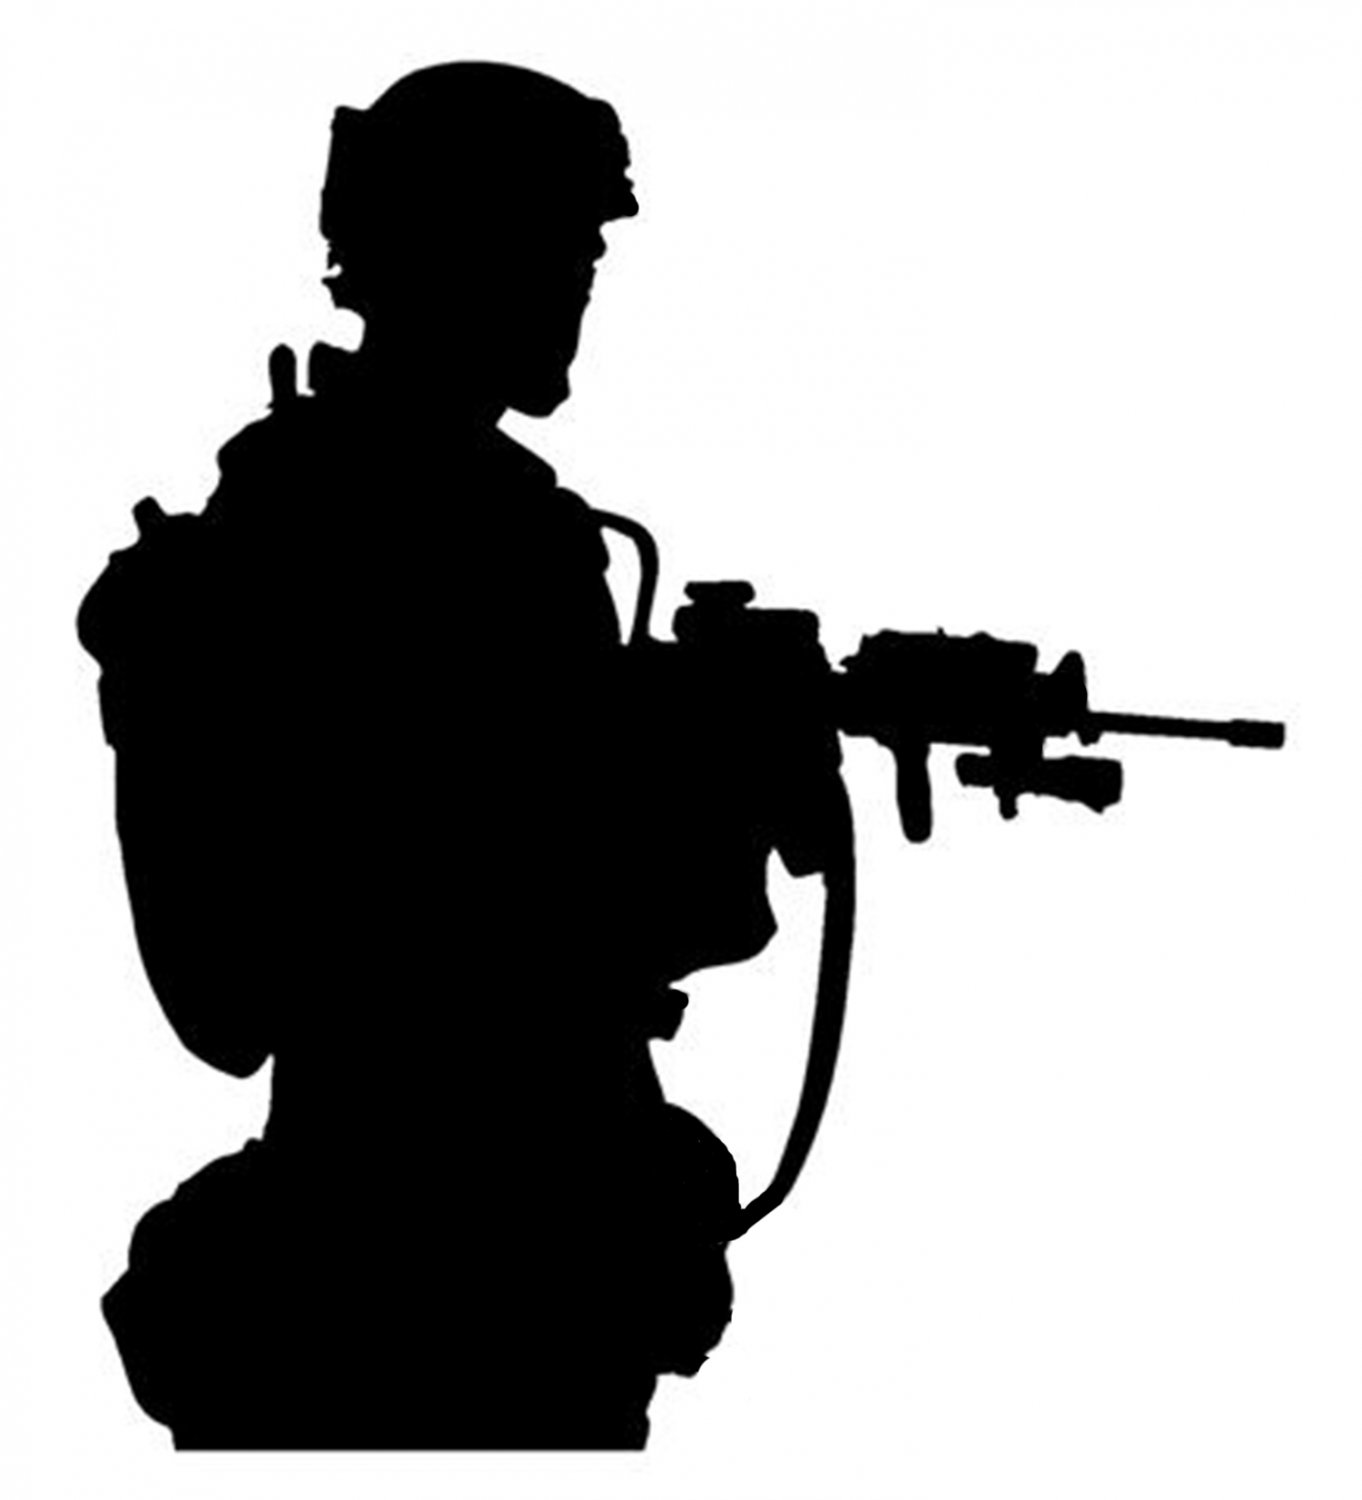 army silhouette military silhouette clip art clipart collection cliparts silhouette army